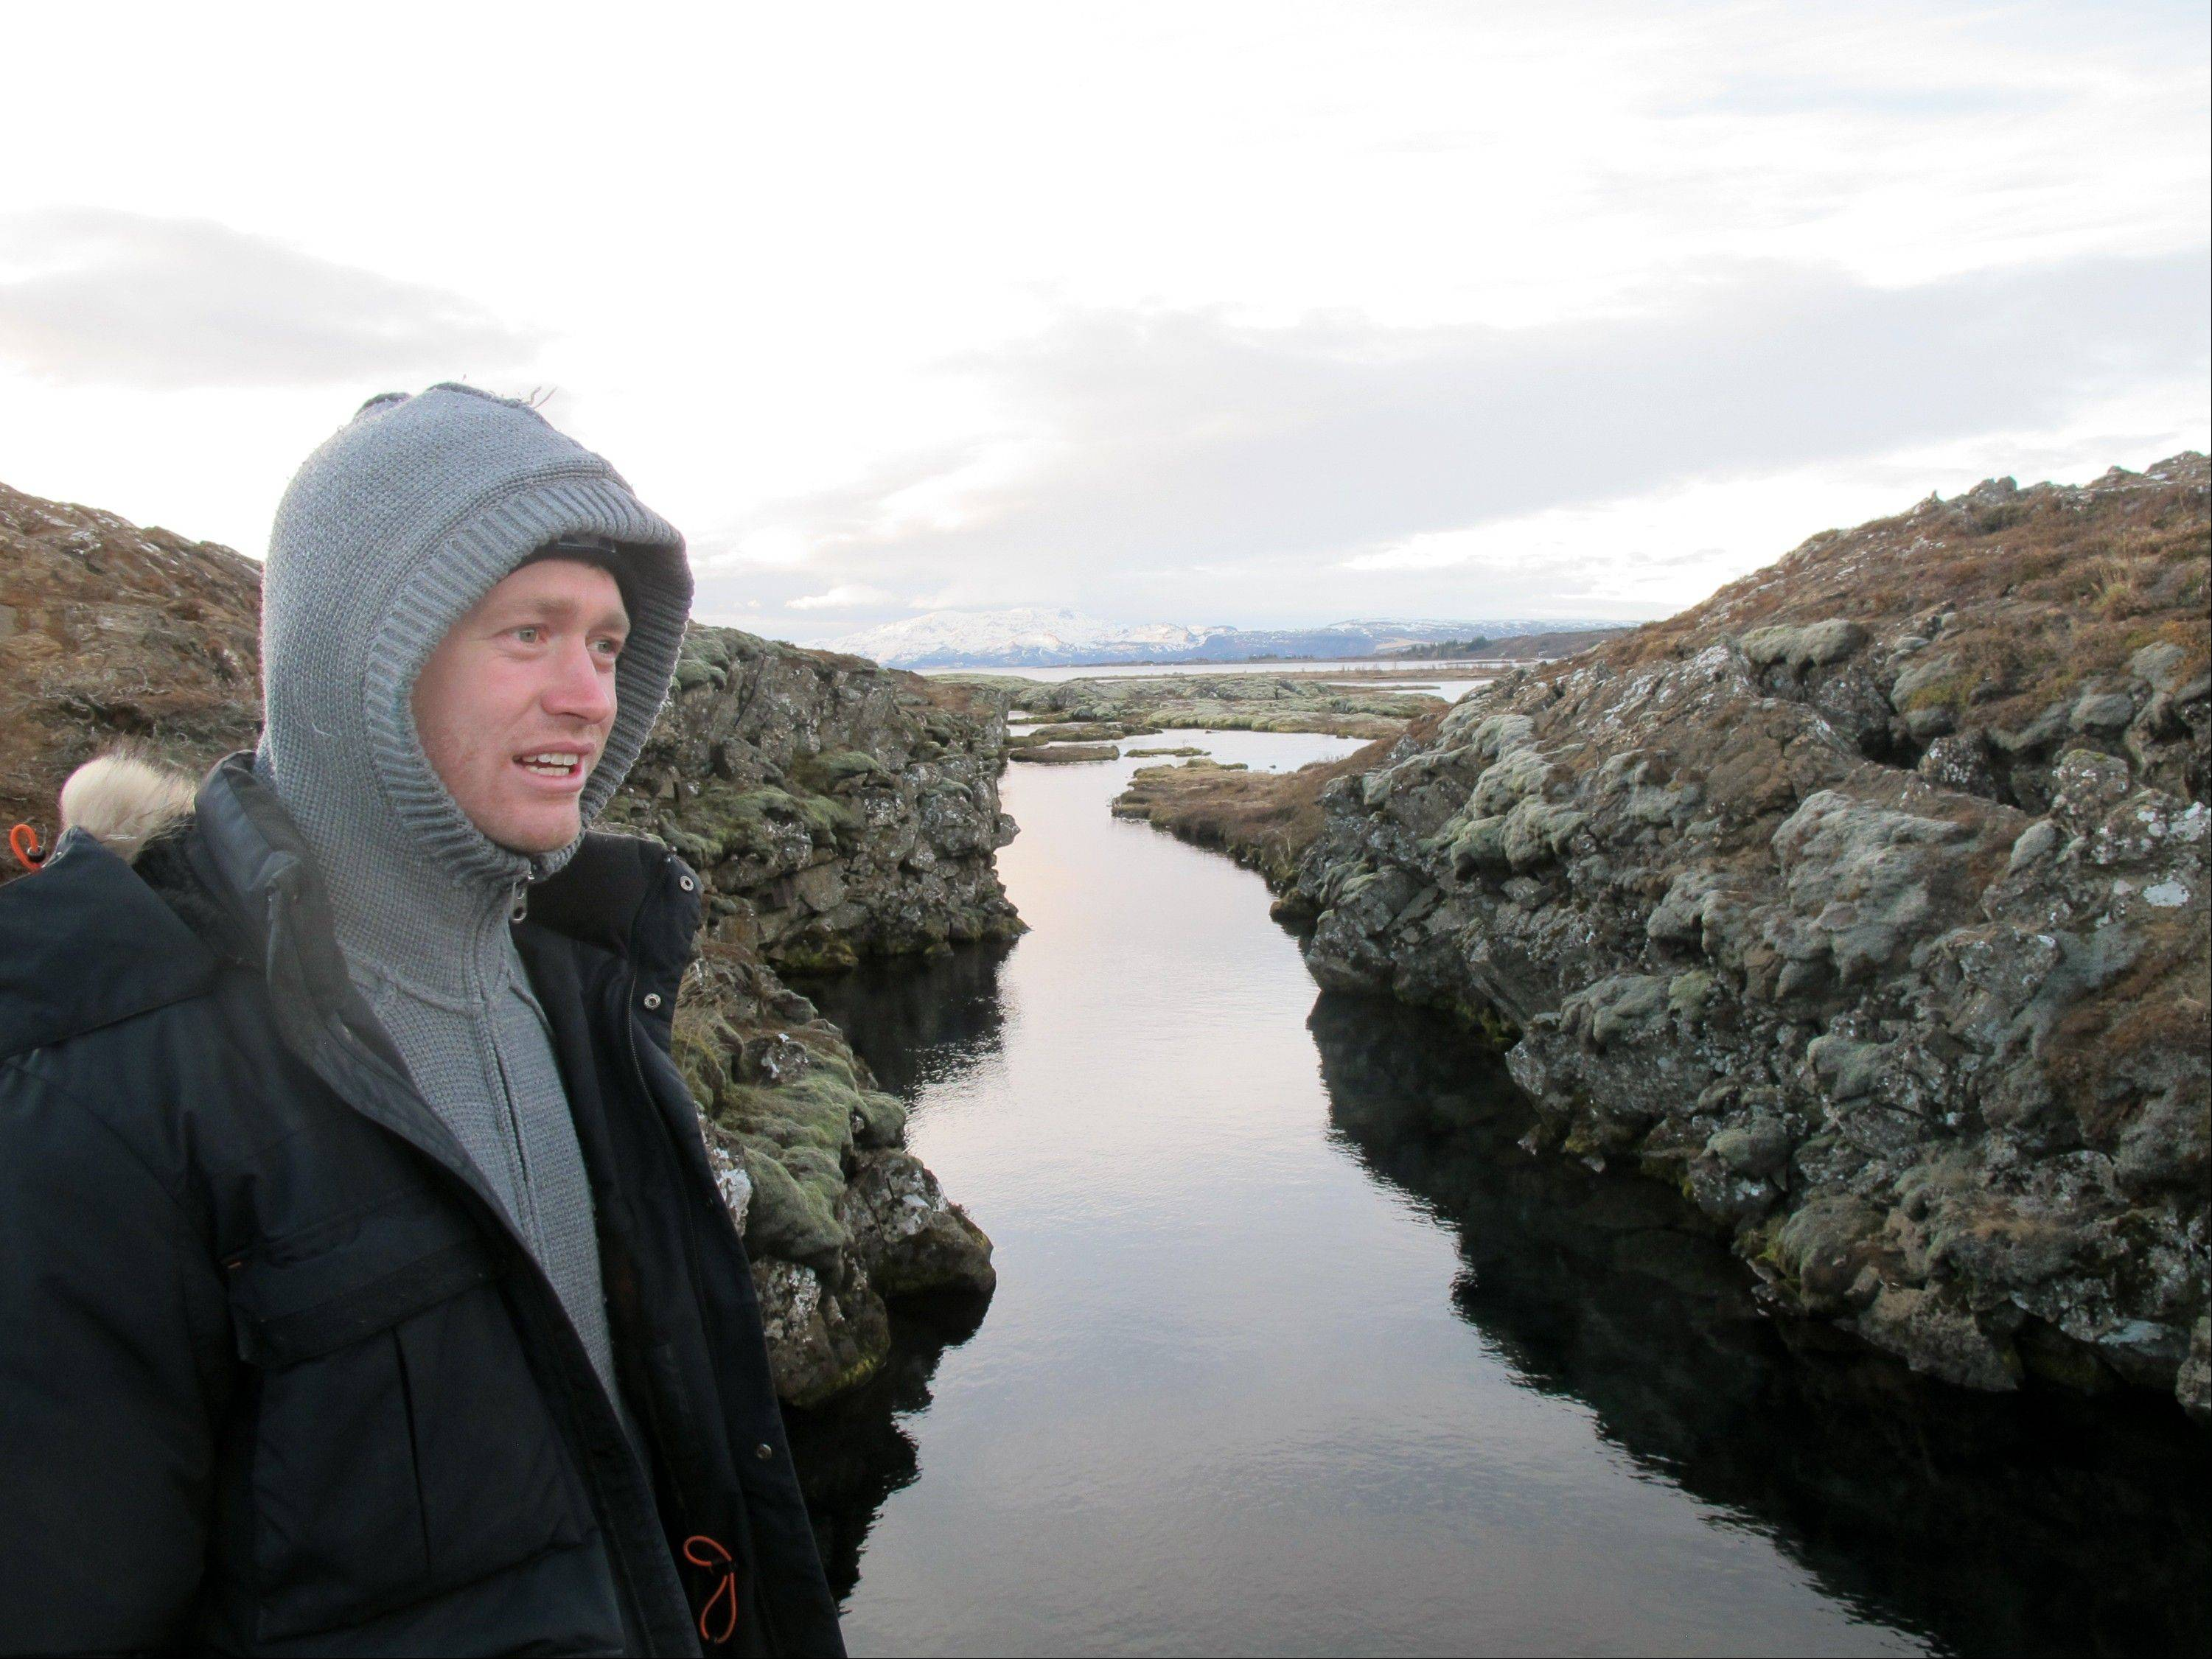 Louis Kotze of DIVE.IS gives instructions to snorkelers at Iceland's Silfra rift, which is fed by glacial water.